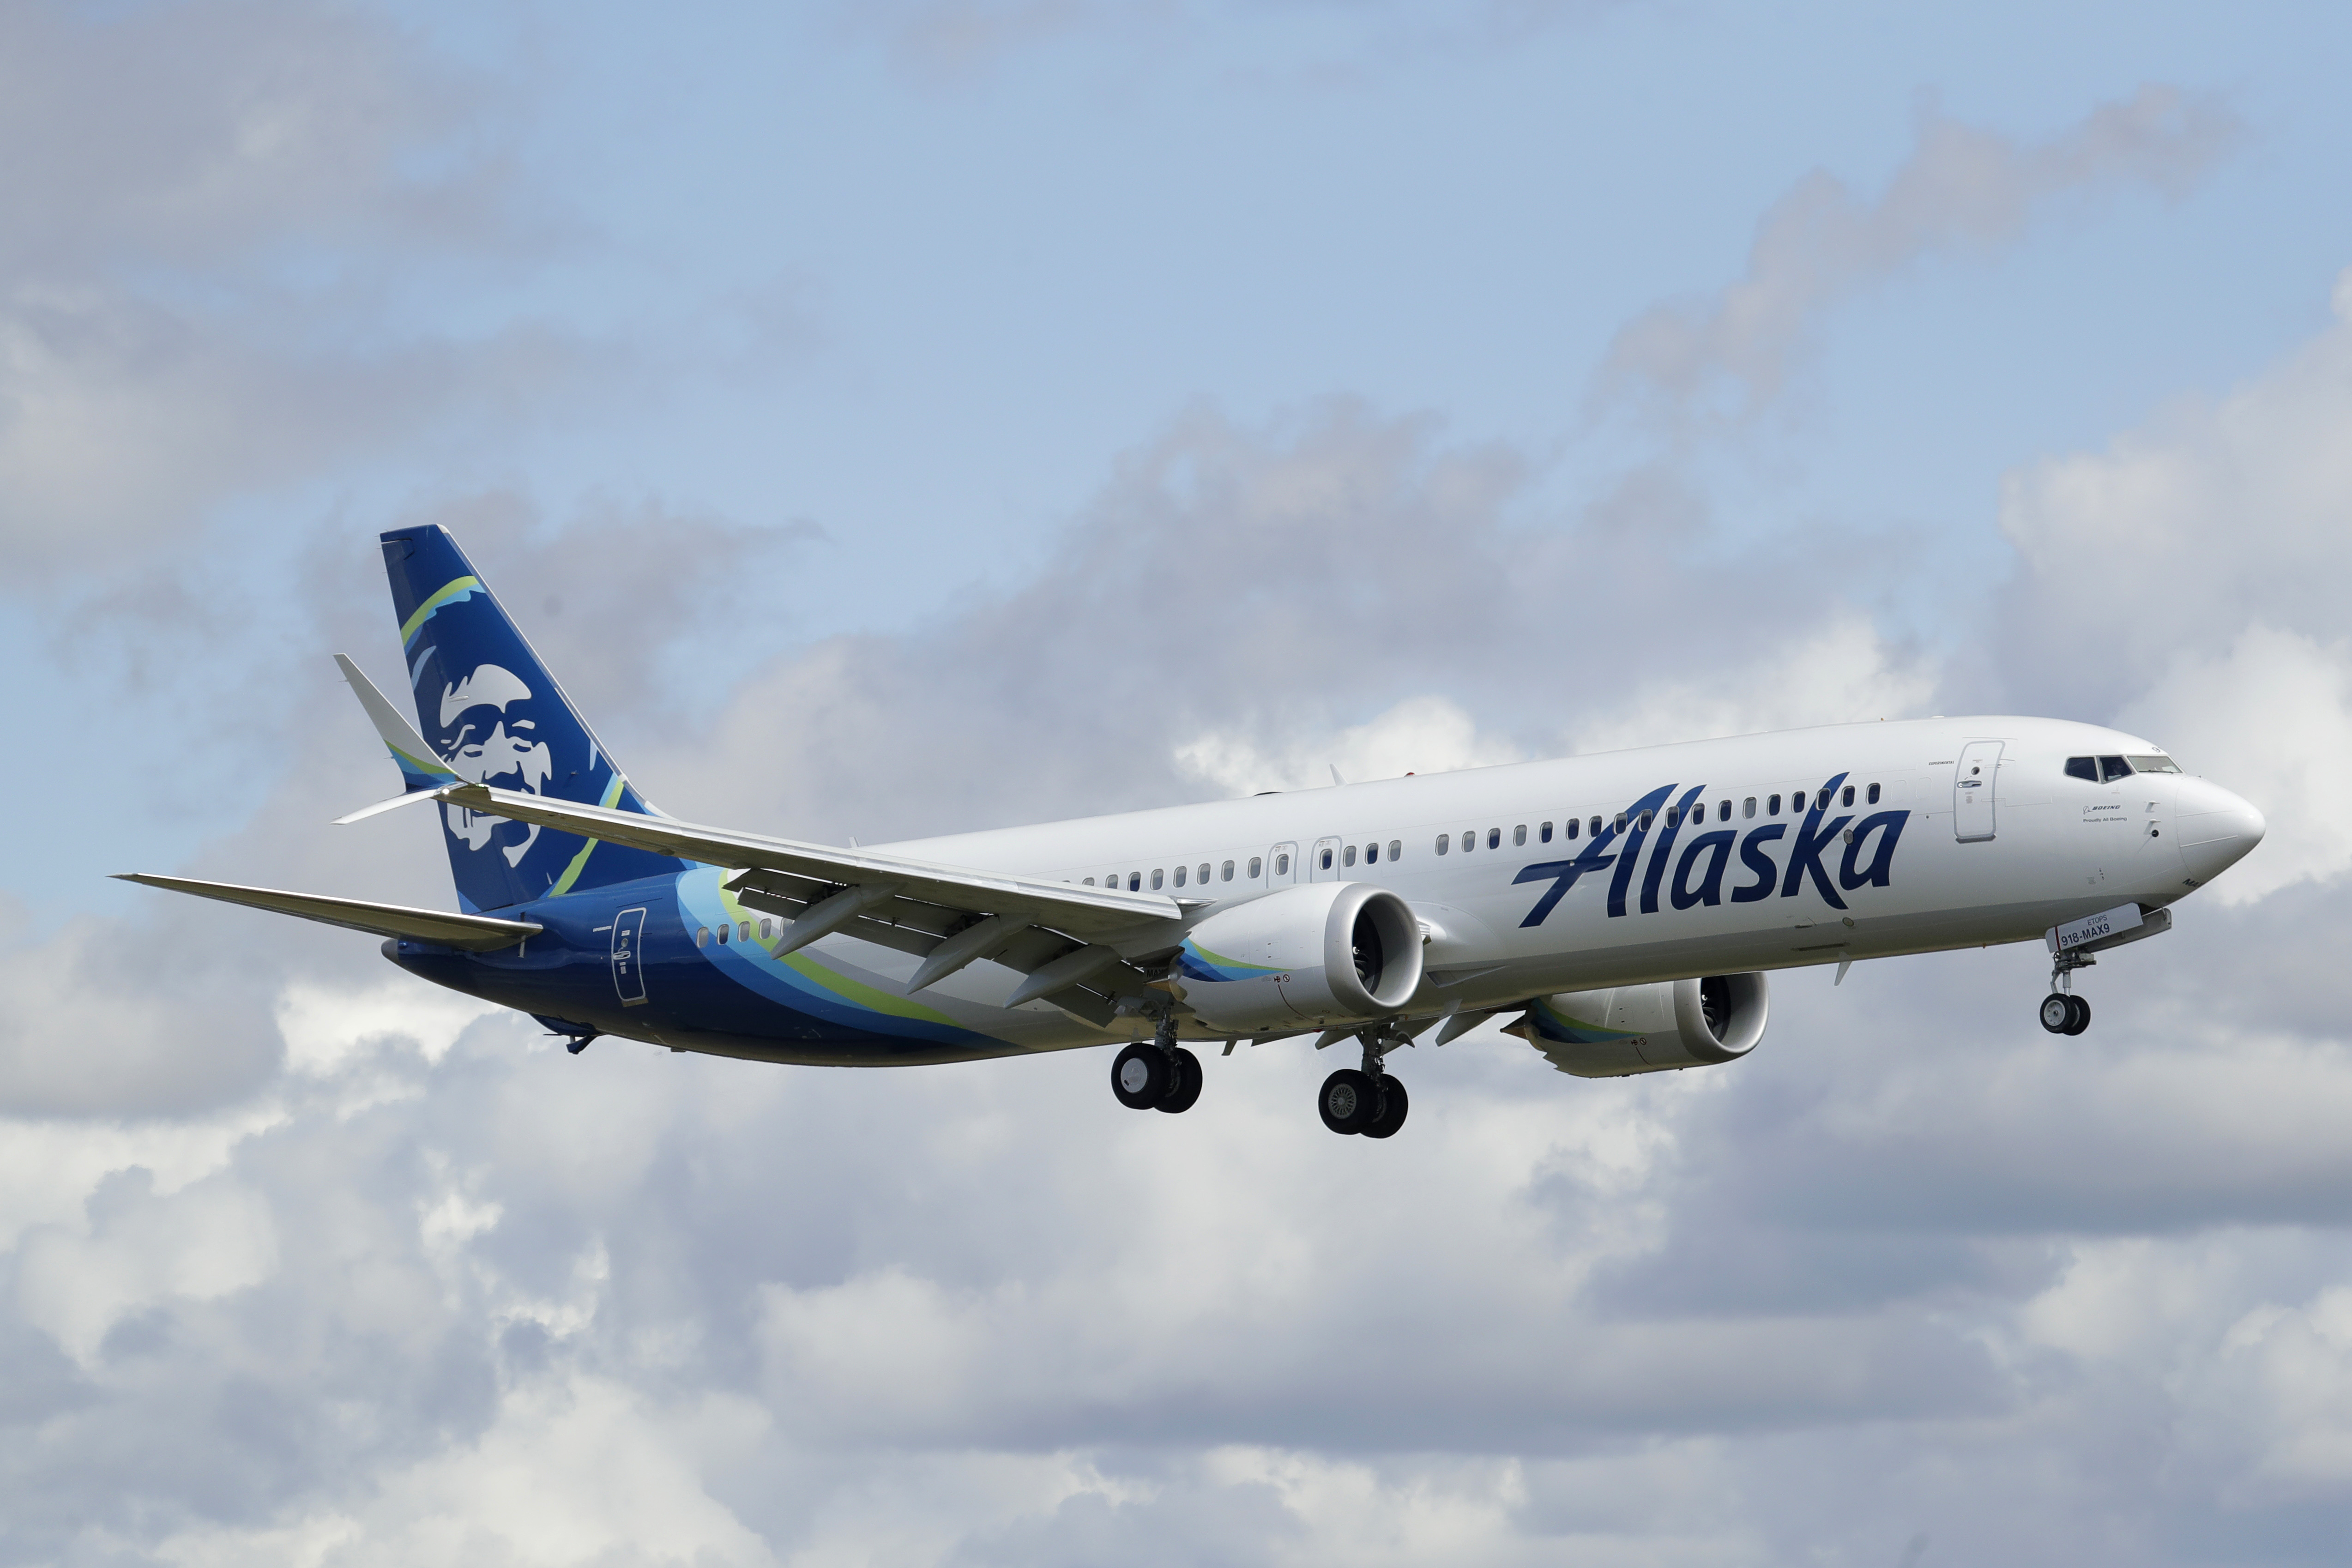 An Alaska Airlines Boeing 737-9 Max flies above Paine Field near Boeing's manufacturing facility in Everett, Washington, on March 23.